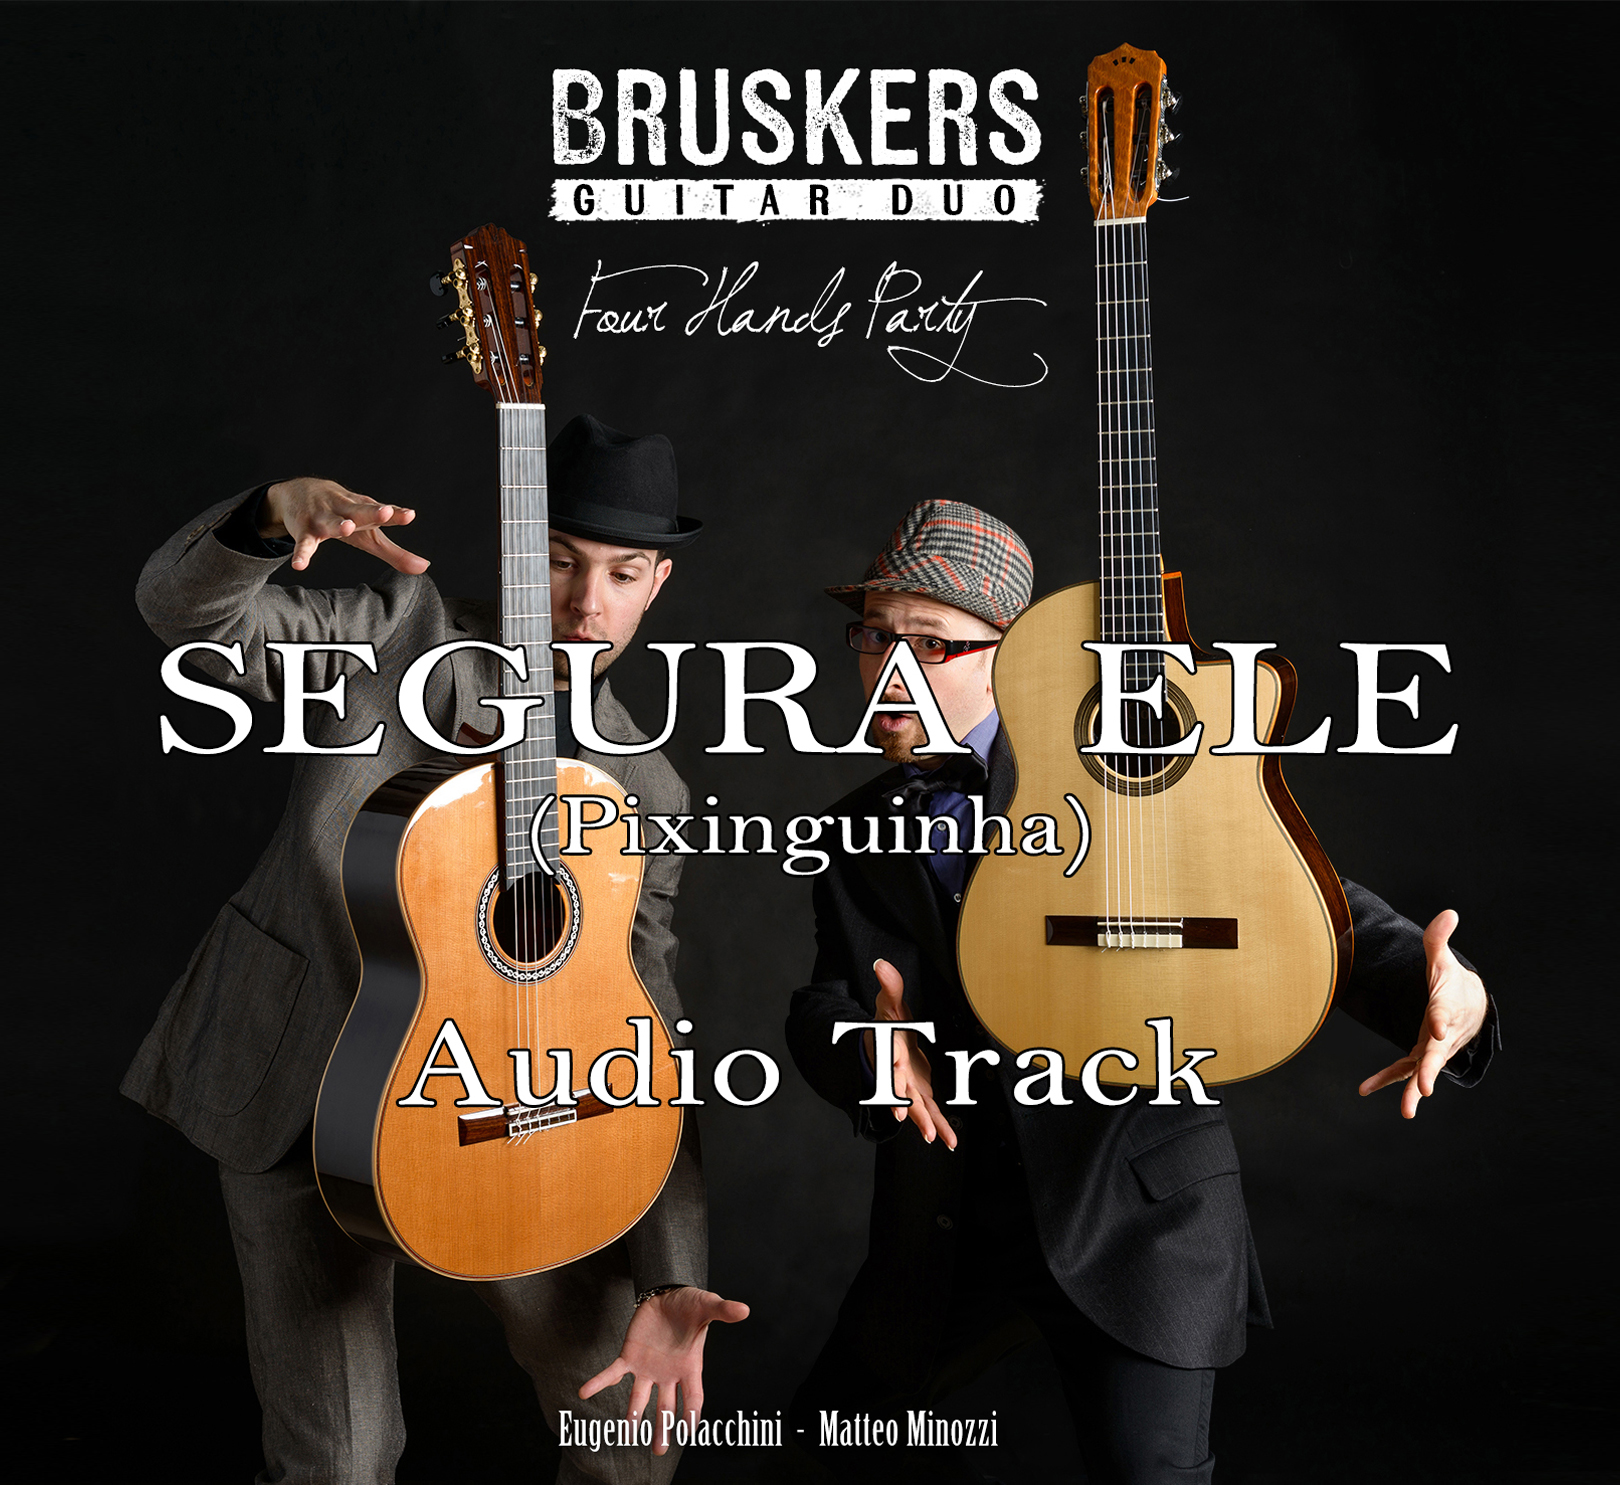 "Audio Track ""Segura Ele"" by Pixinguinha - from the album ""Four Hands Party"" by the Bruskers Guitar Duo"